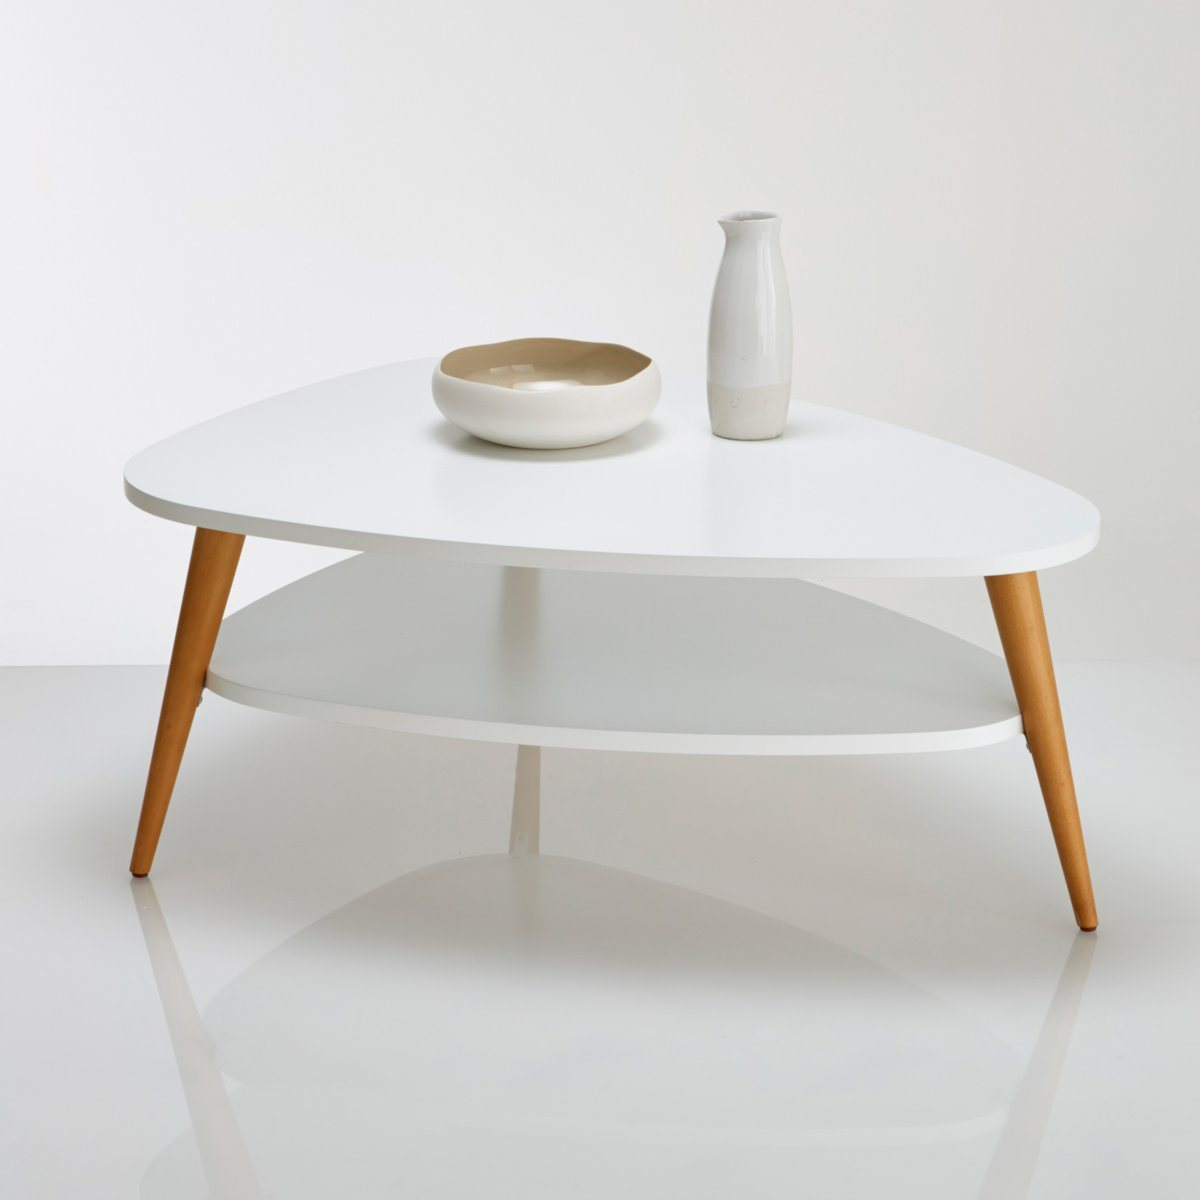 La table basse parfaite pour votre salon rise and shine for Table de salon style scandinave